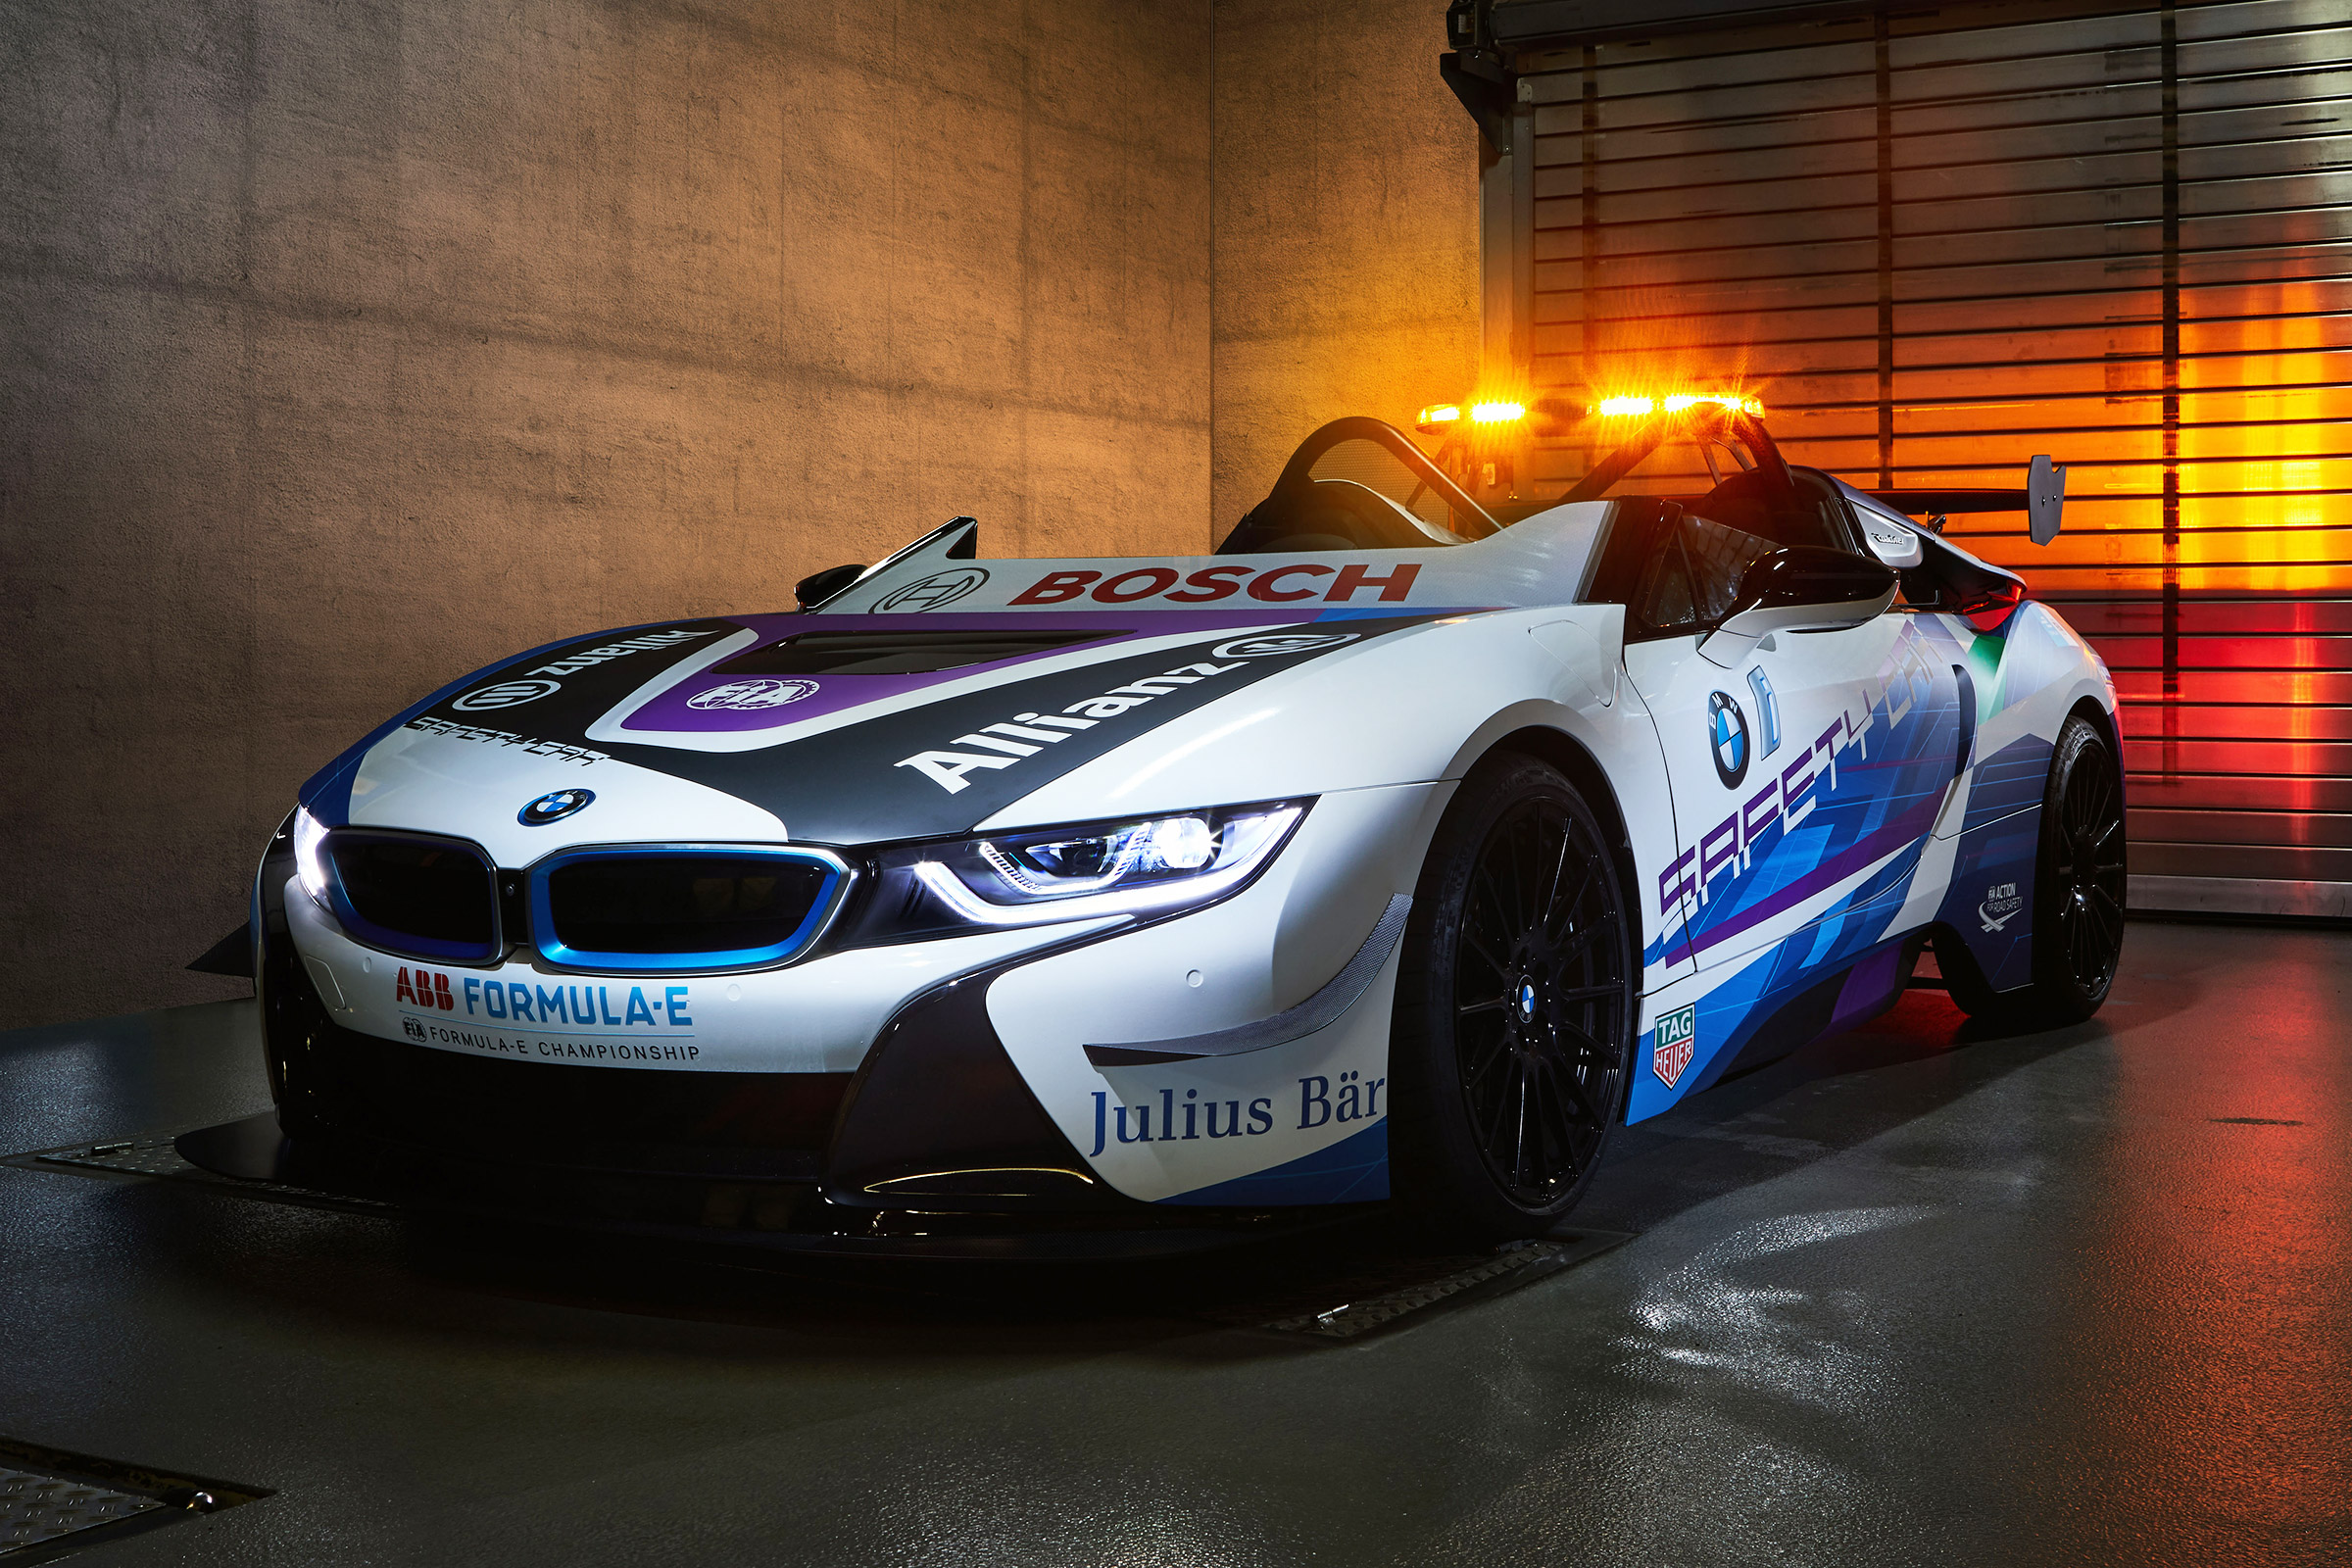 Modified Bmw I8 Roadster Revealed As New Formula E Safety Car Auto Express